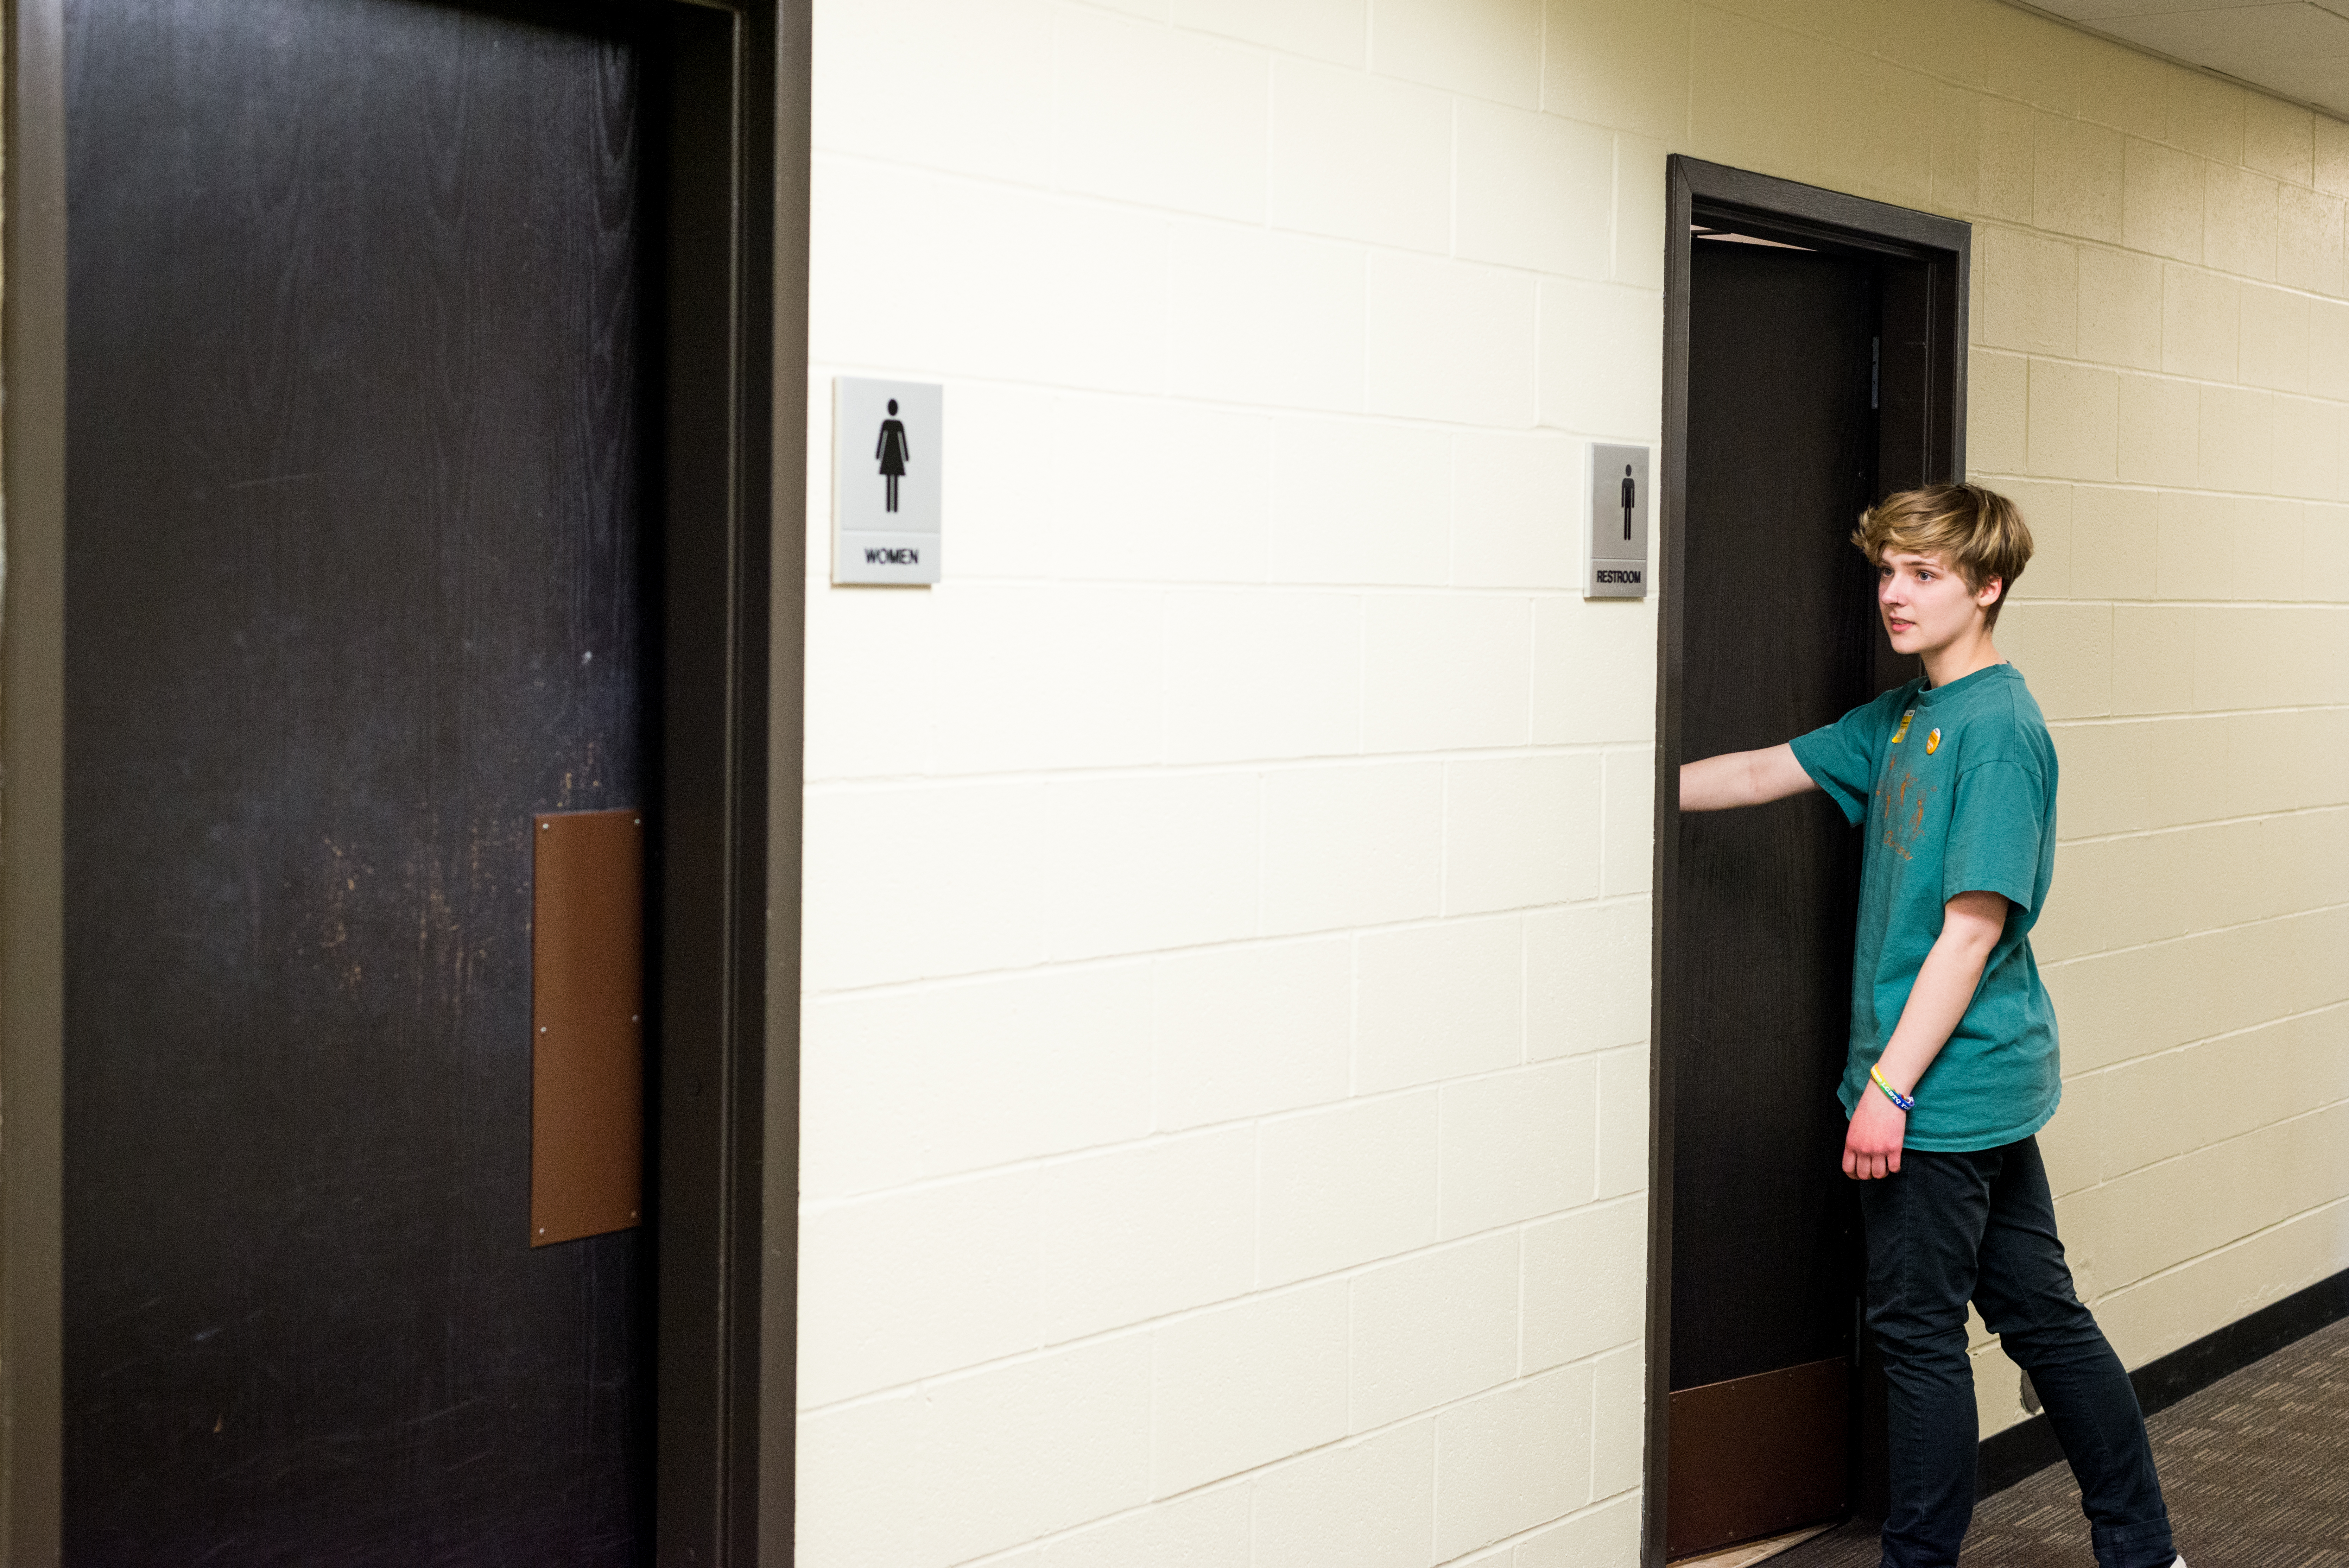 Student entering a men's restroom while looking at the women's restroom sign.